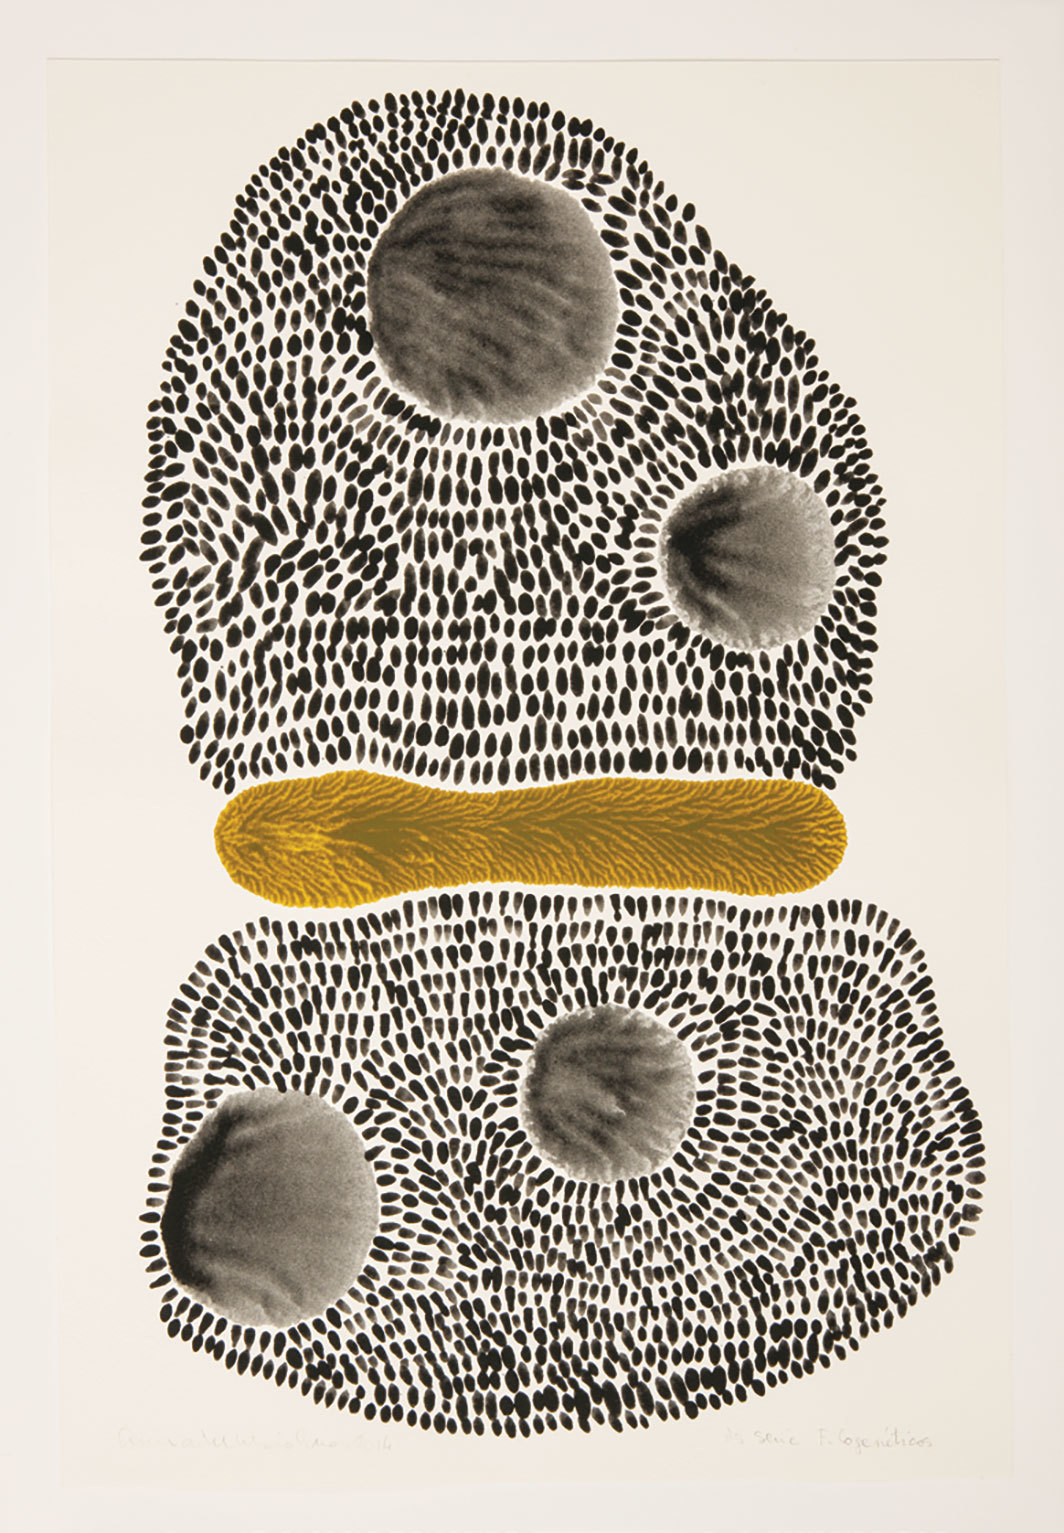 "Anna Maria Maiolino, Untitled, 2014, acrylic ink on paper, 17 7⁄8 × 12"". From the series ""Filogenéticos"" (Phylogenetics)."